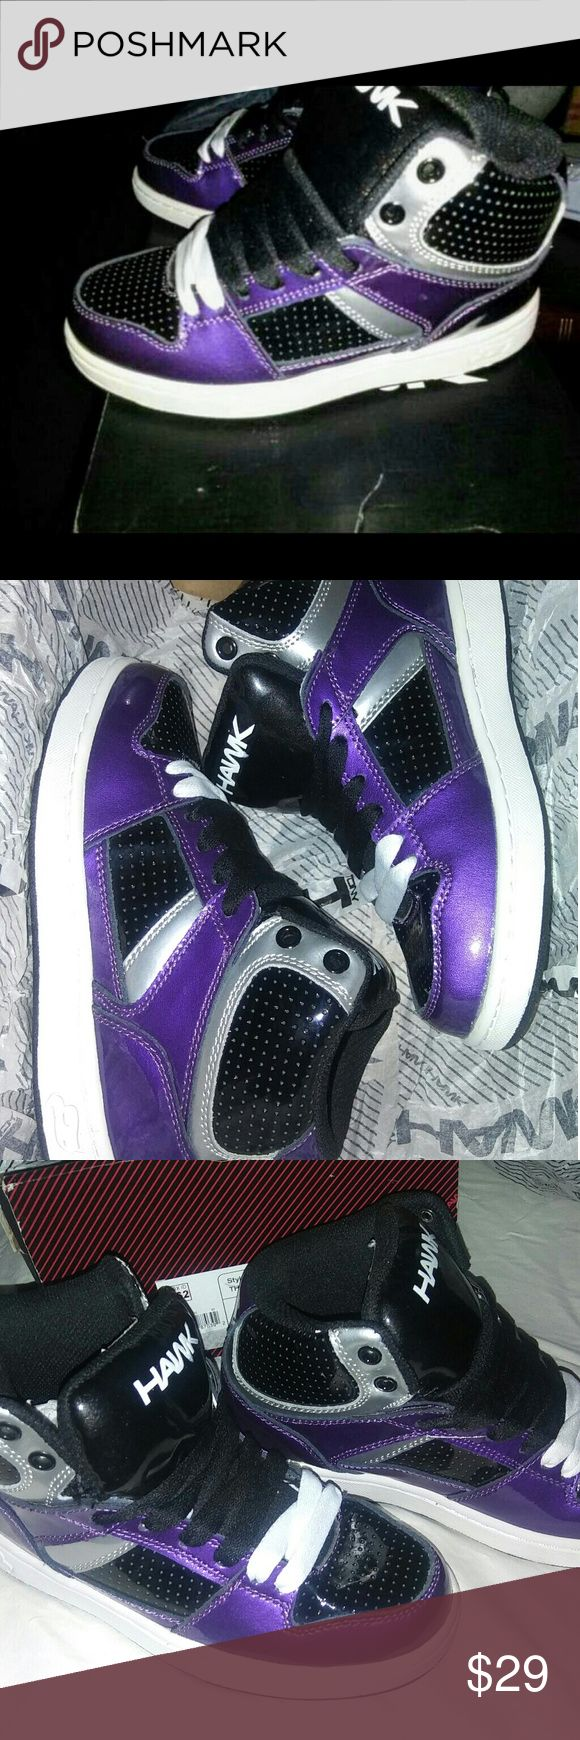 NIB Boys Size 2 TONY HAWK hightops Brand new in box Tony Hawk brand hightops. Size 2 boys. Purple, black and silver. Perfect cond. Never worn. Retails for $60 tony hawk Shoes Sneakers